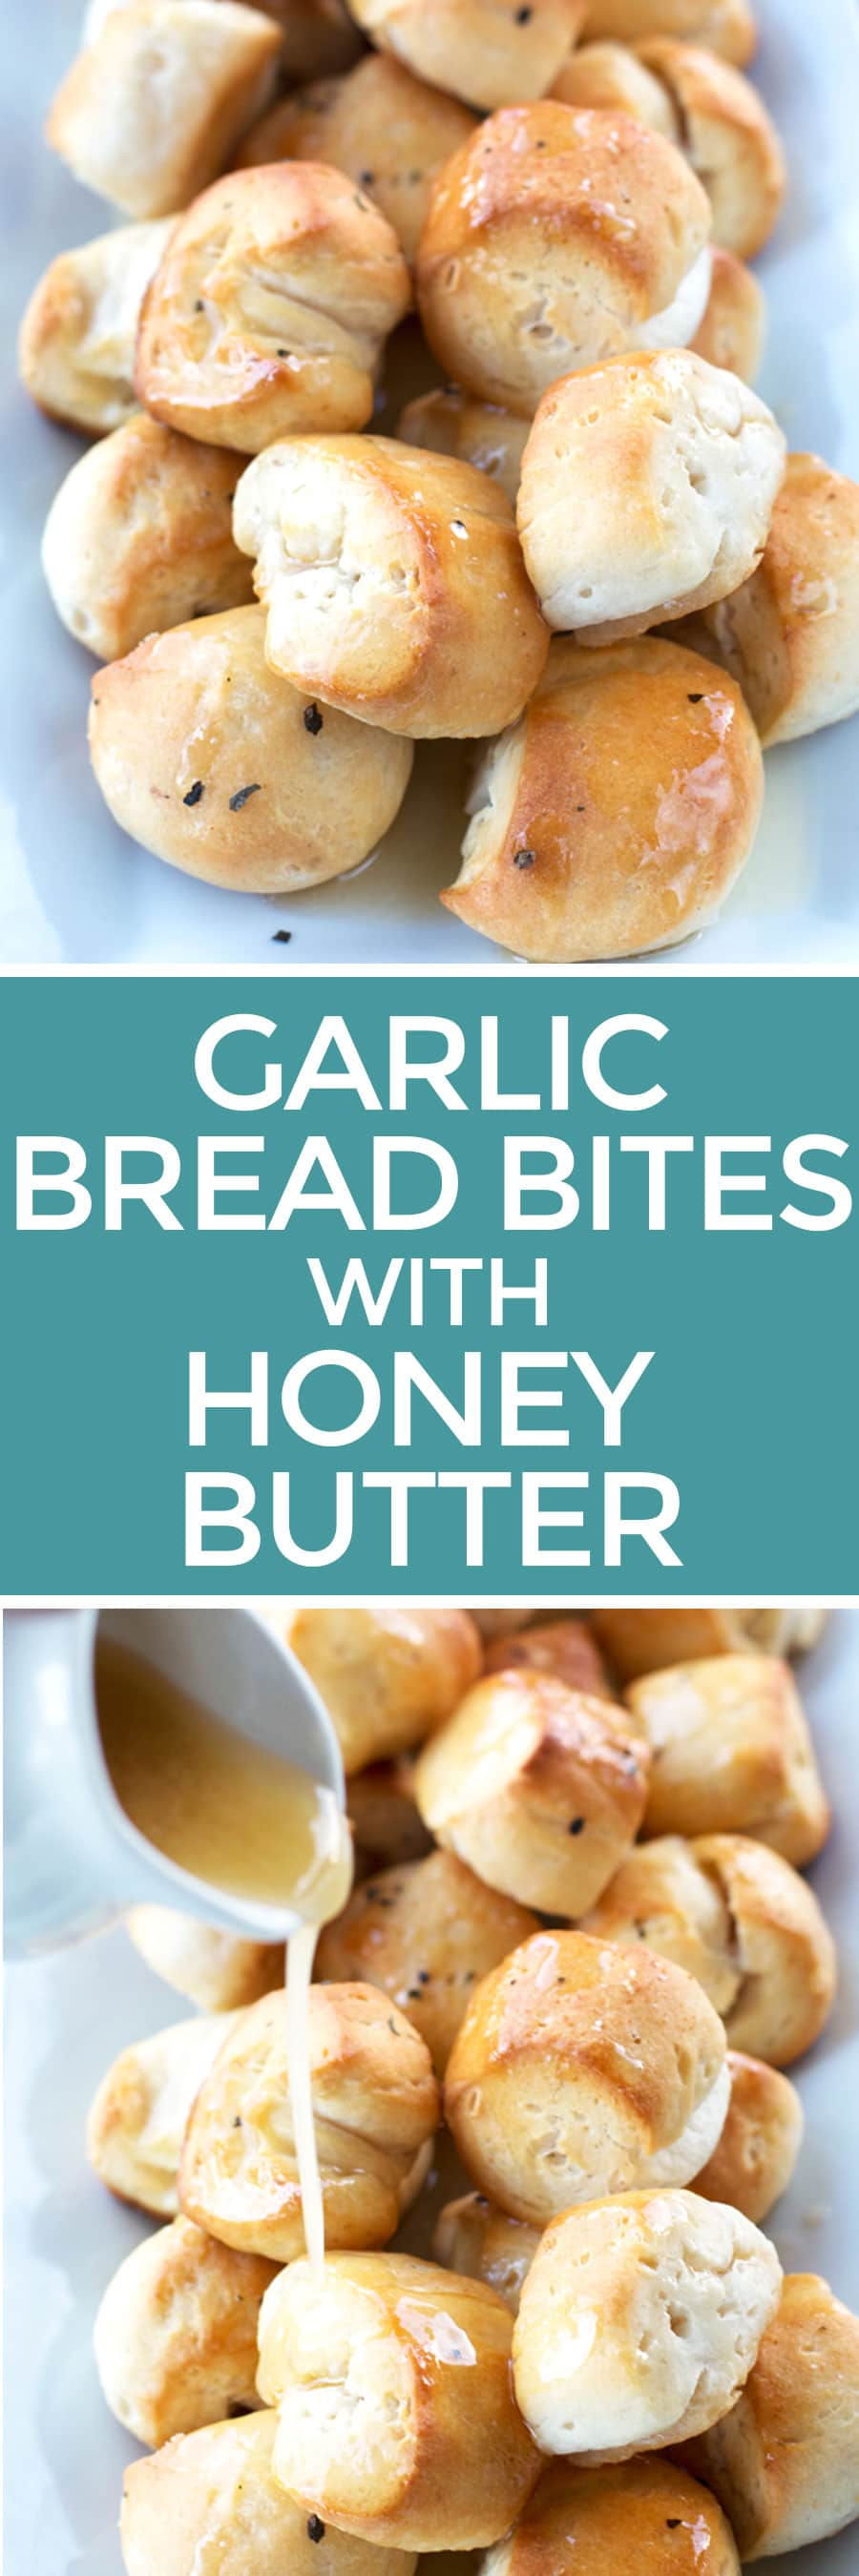 Garlic Bread Bites with Honey Butter | cakenknife.com